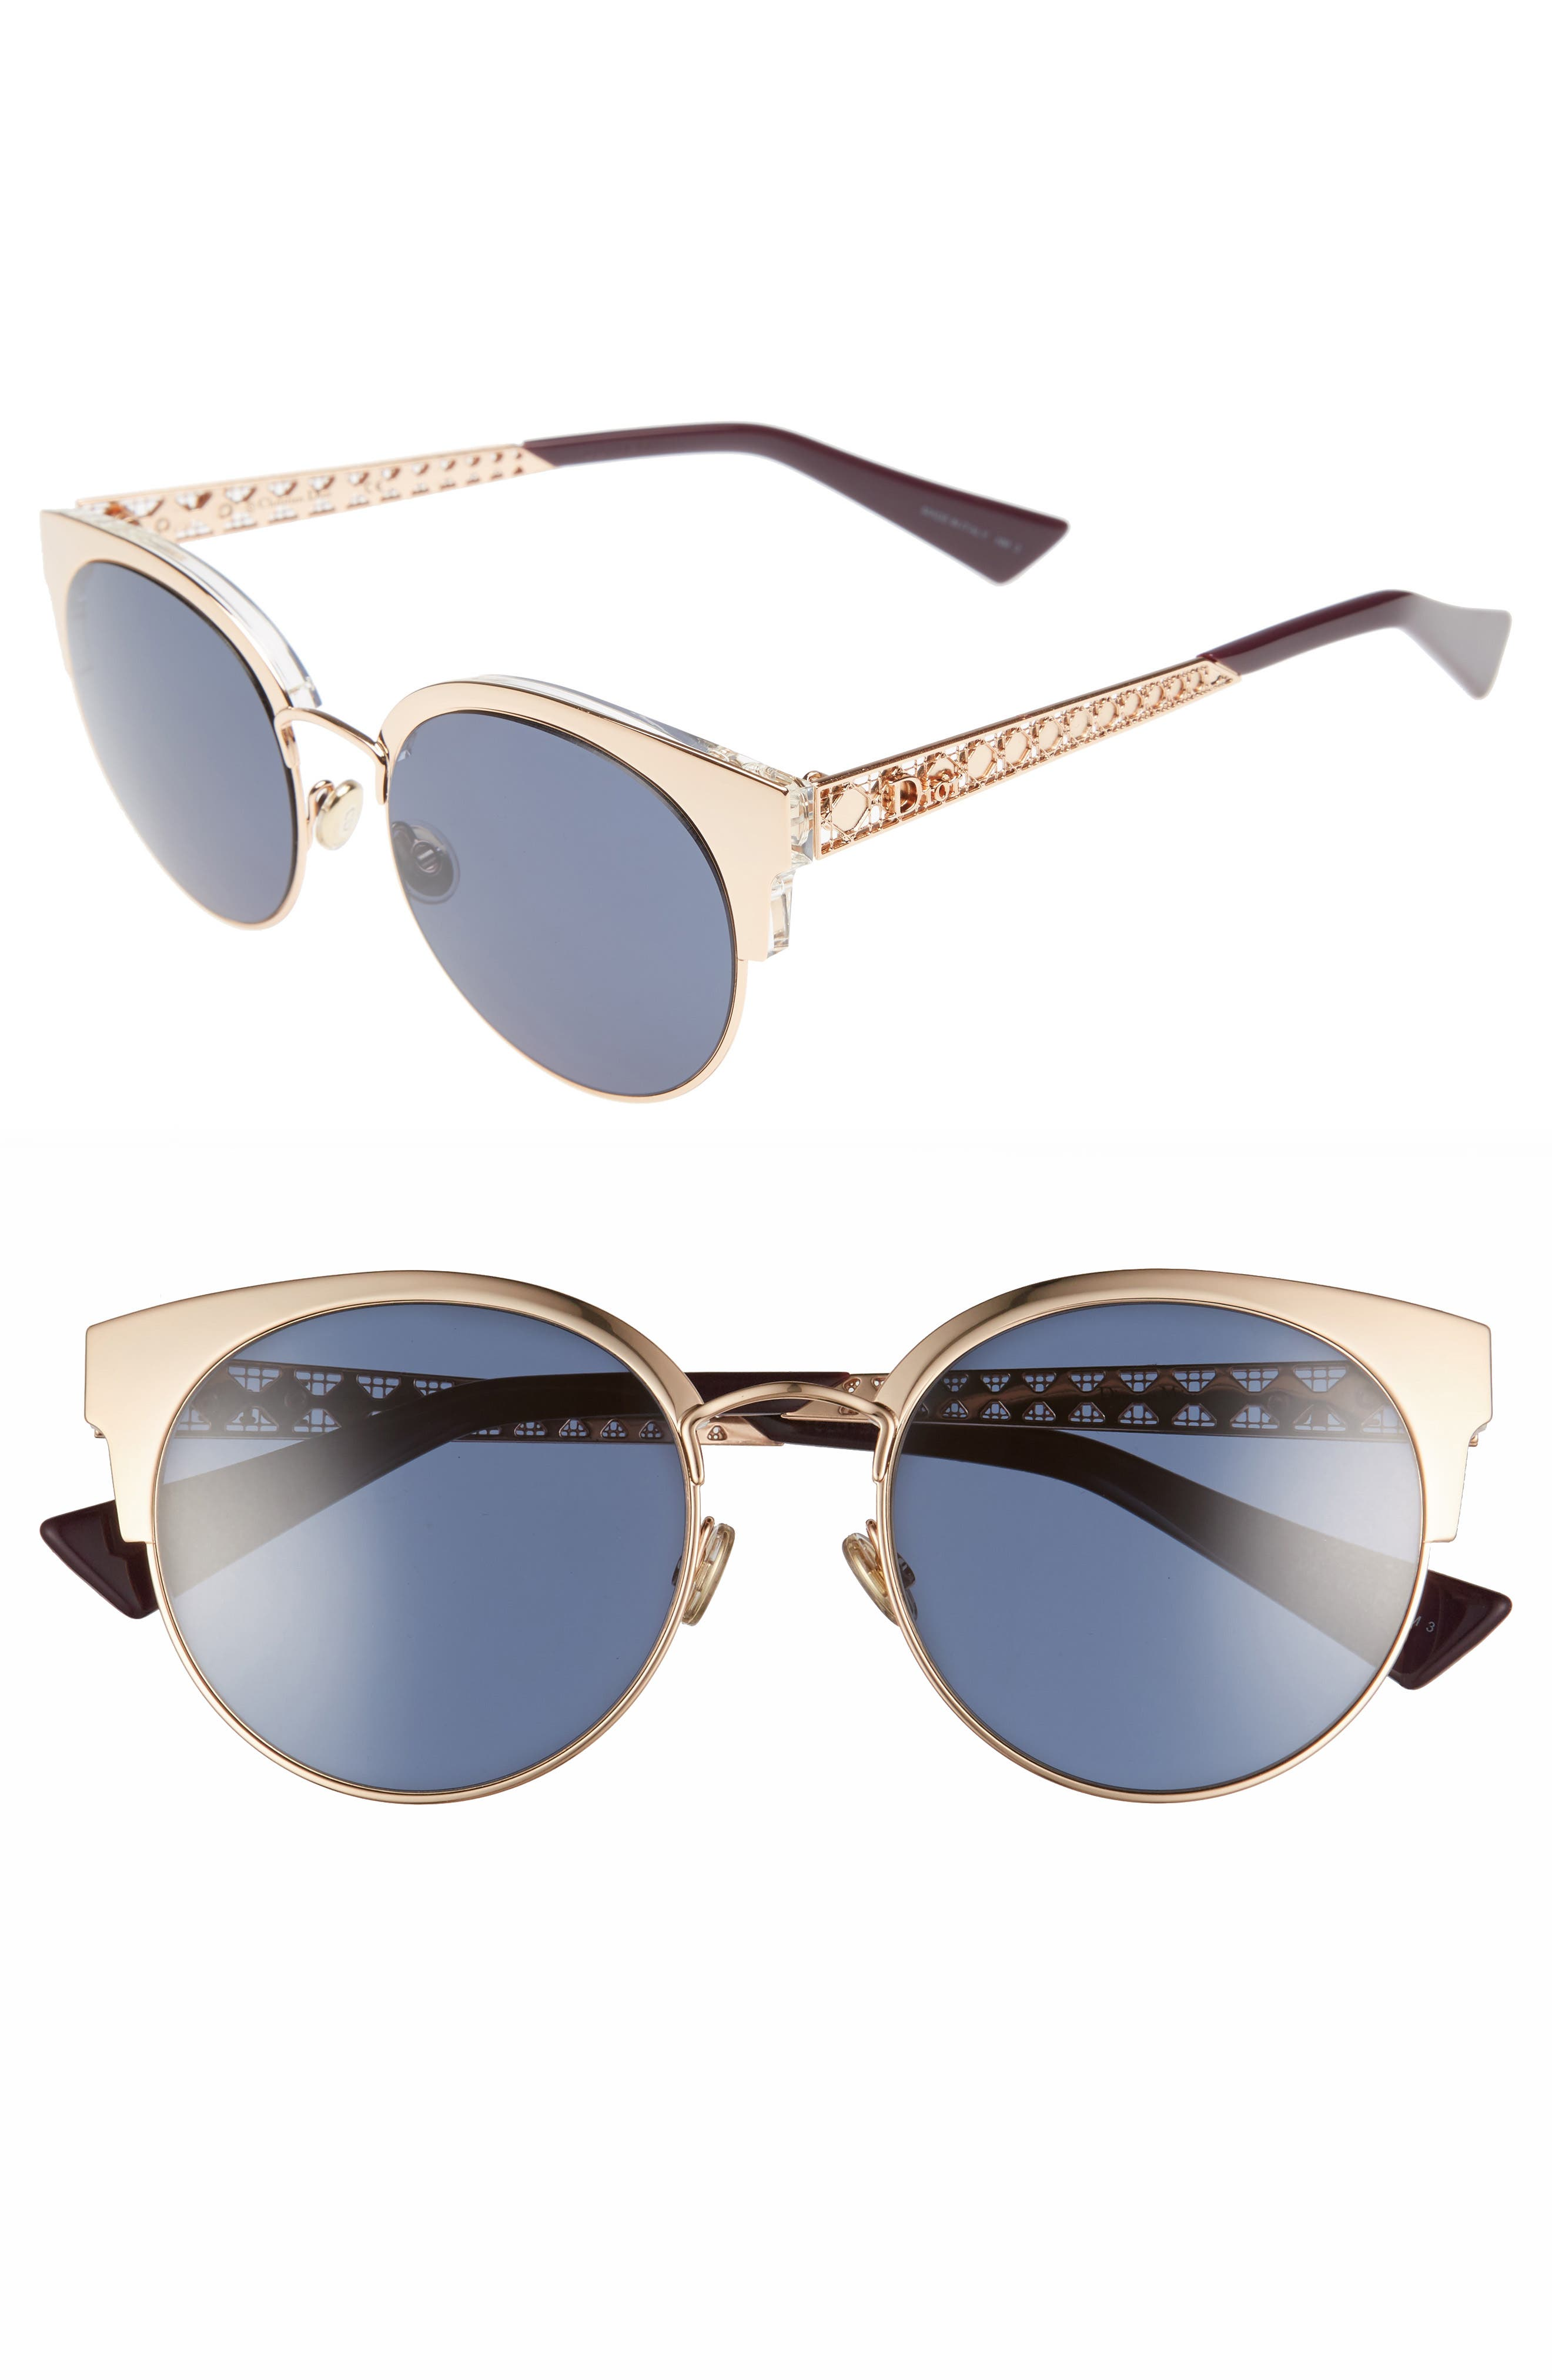 Dior Diorama Mini 54mm Mirrored Lens Cat Eye Sunglasses